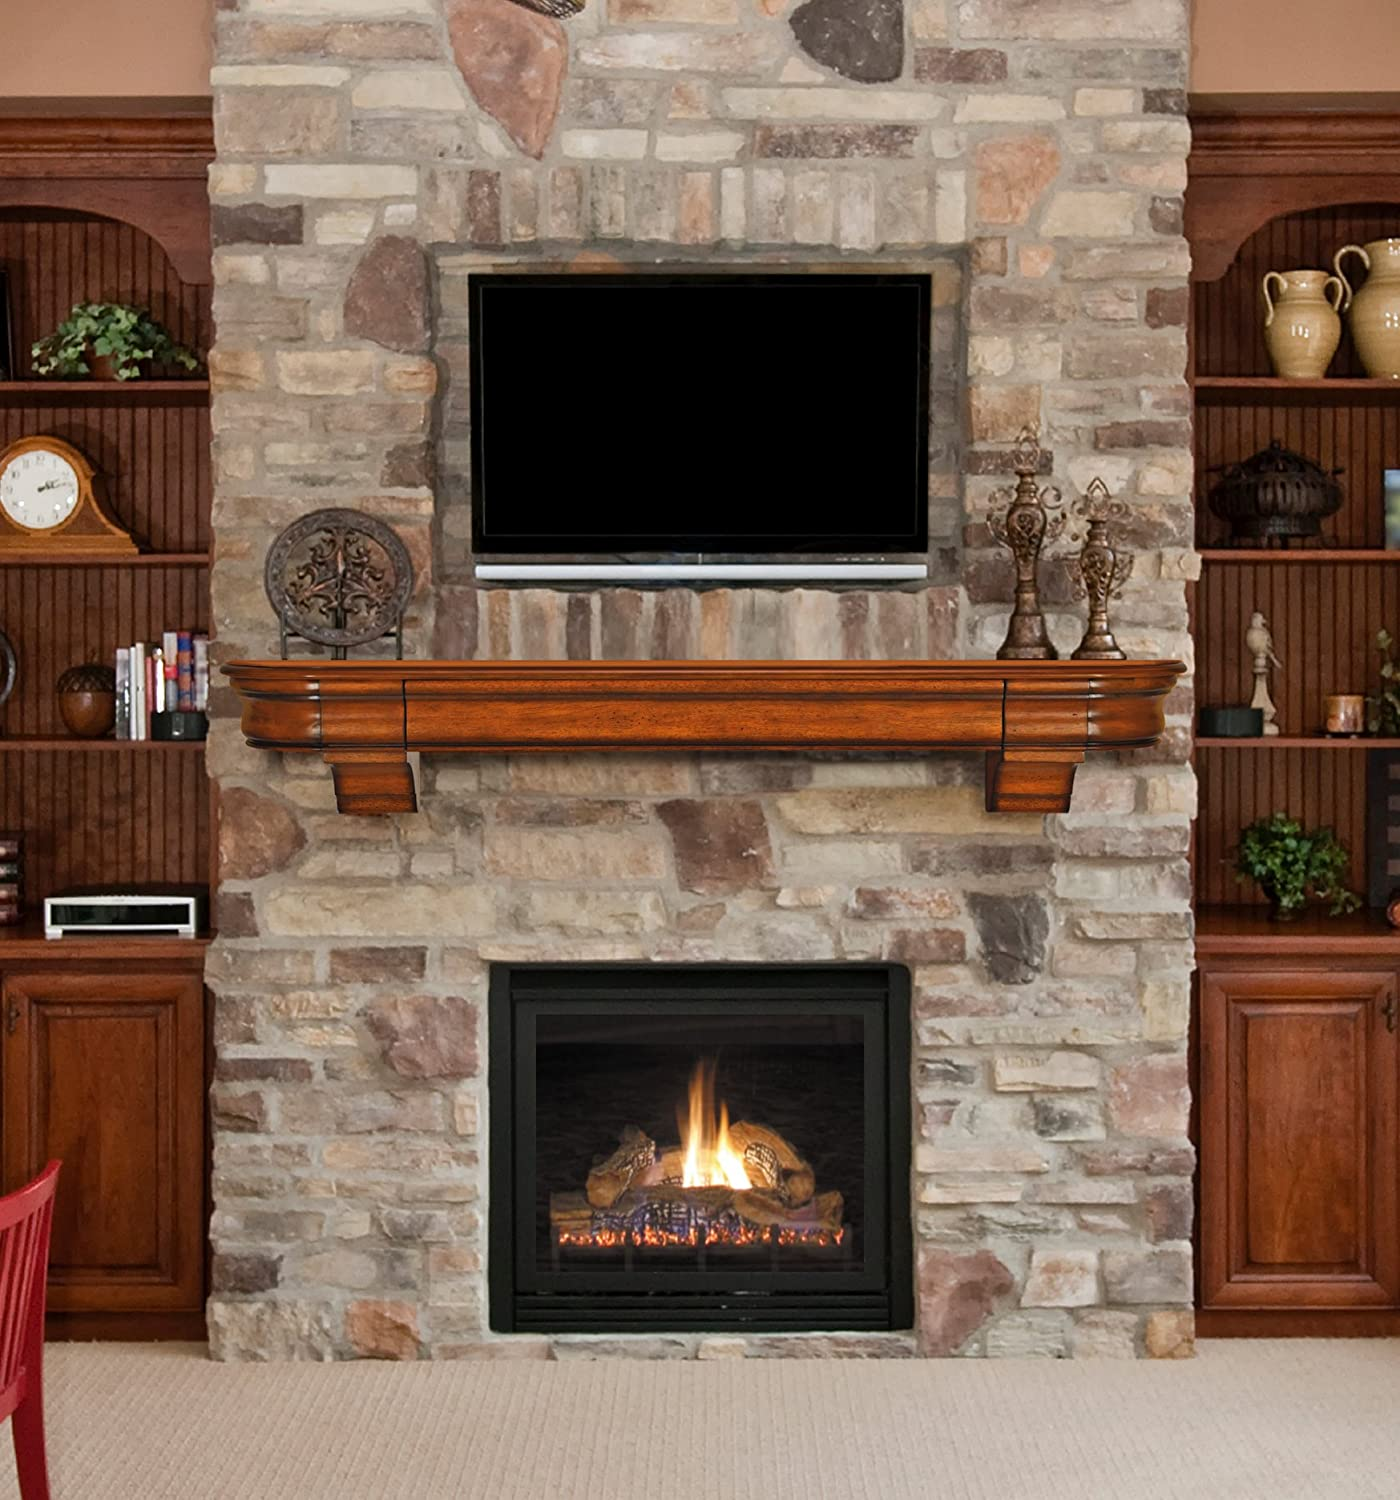 bookcase and mantel in makeover with surround weblog tiled gas fireplace woodworking svenson blog built wood trimitsis